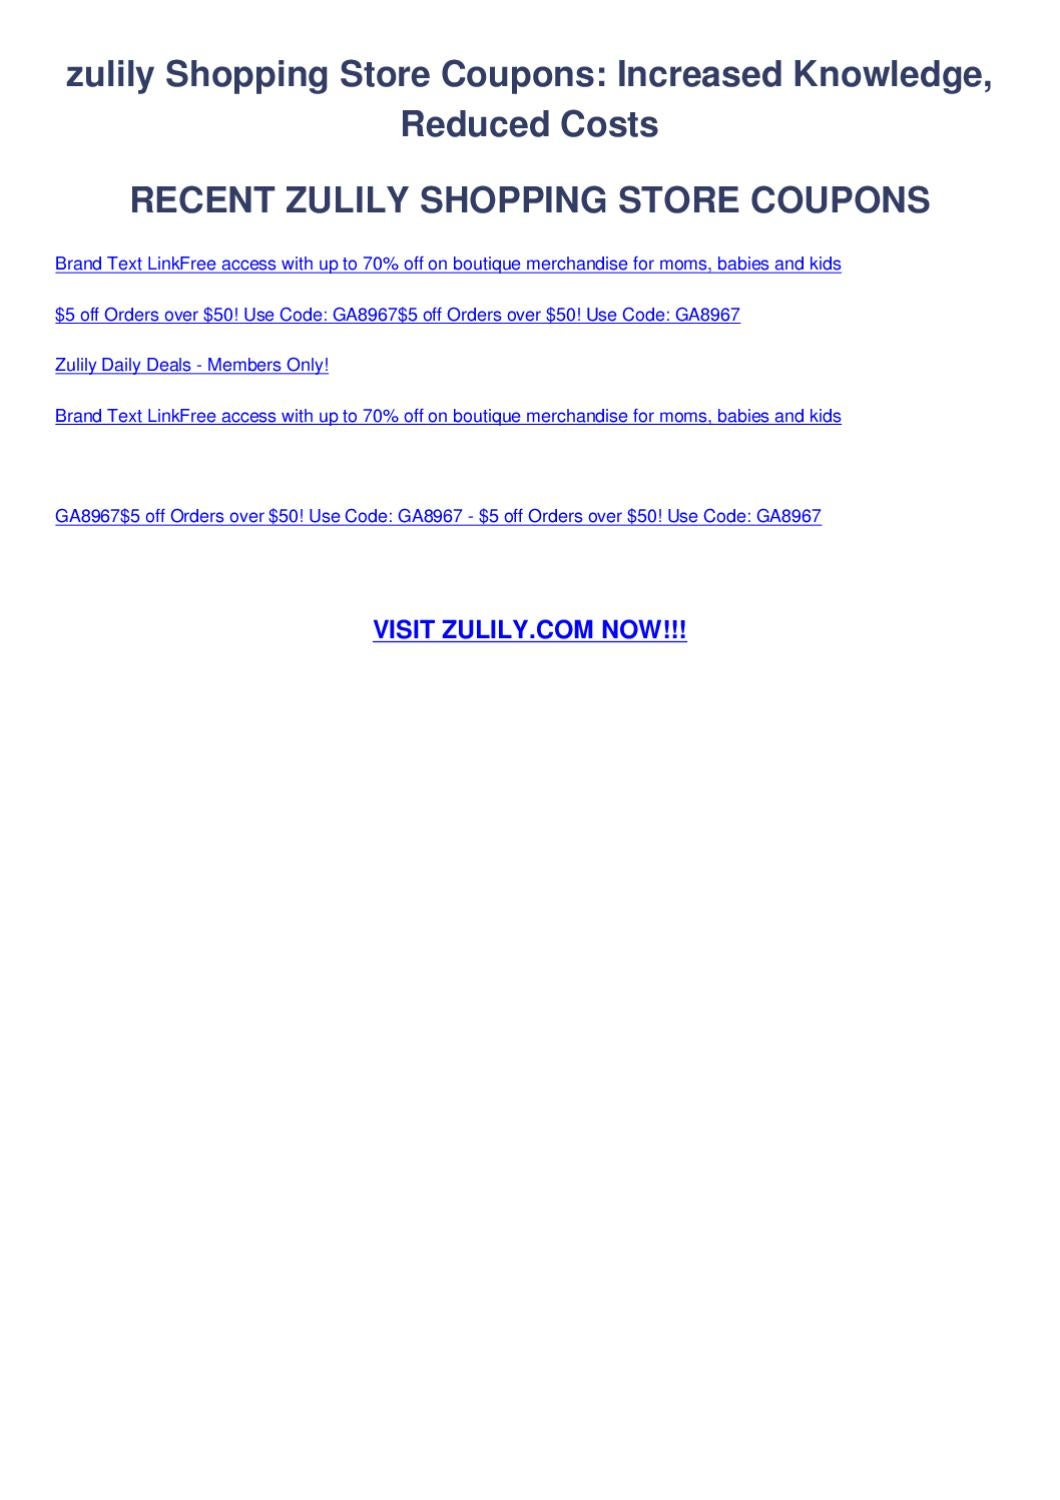 861a03a3399 Zulily shopping store coupons by Coupon Codes - issuu